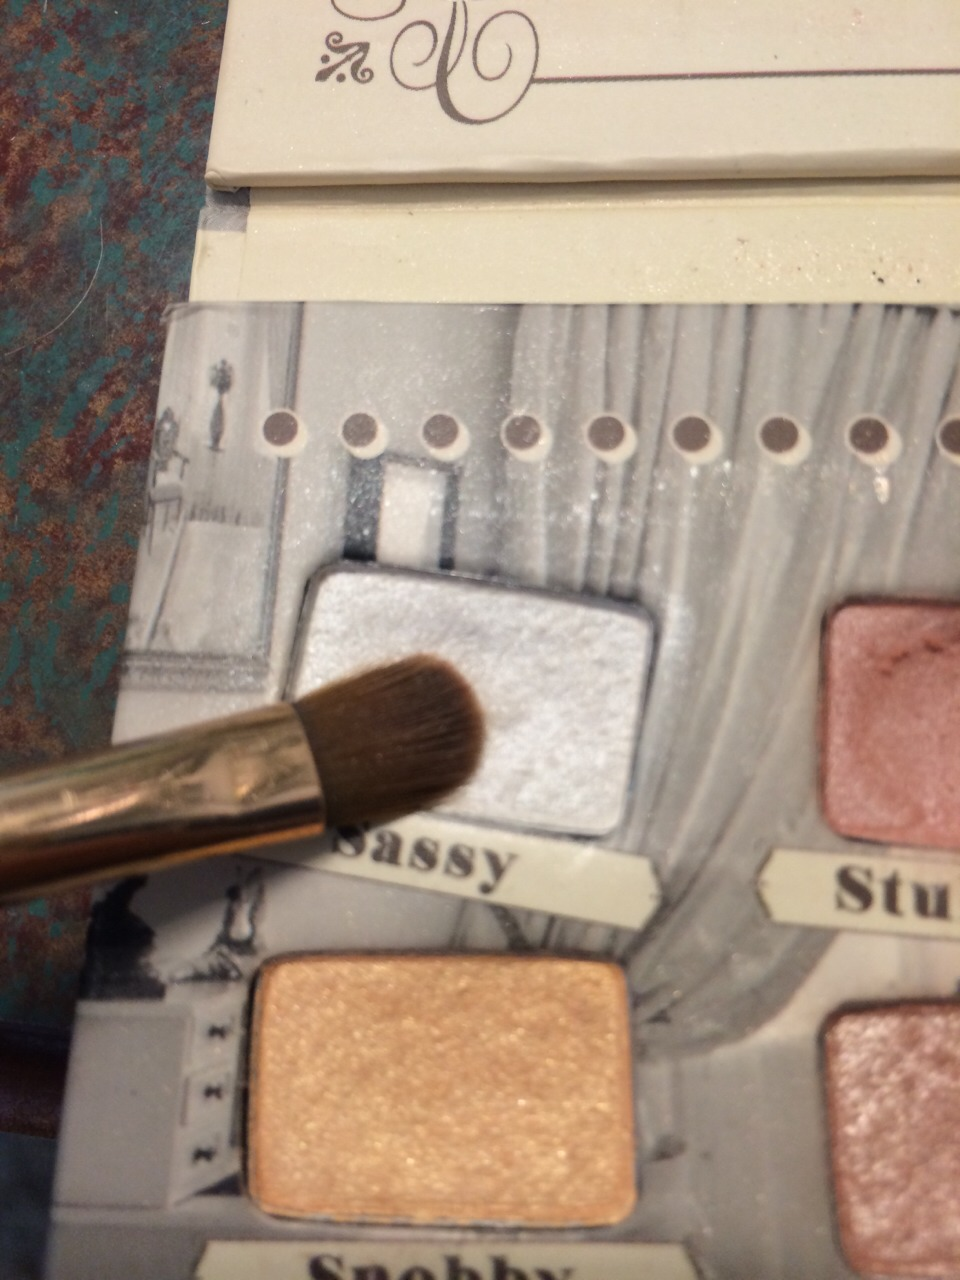 This last step is optional. Take a white eyeshadow and apply it to the inner corner of your eye (again, with the same brush). Also, if the result is too dark for your liking, you can apply a very thin layer of white over everything to lighten it up. I do not usually do this last step.